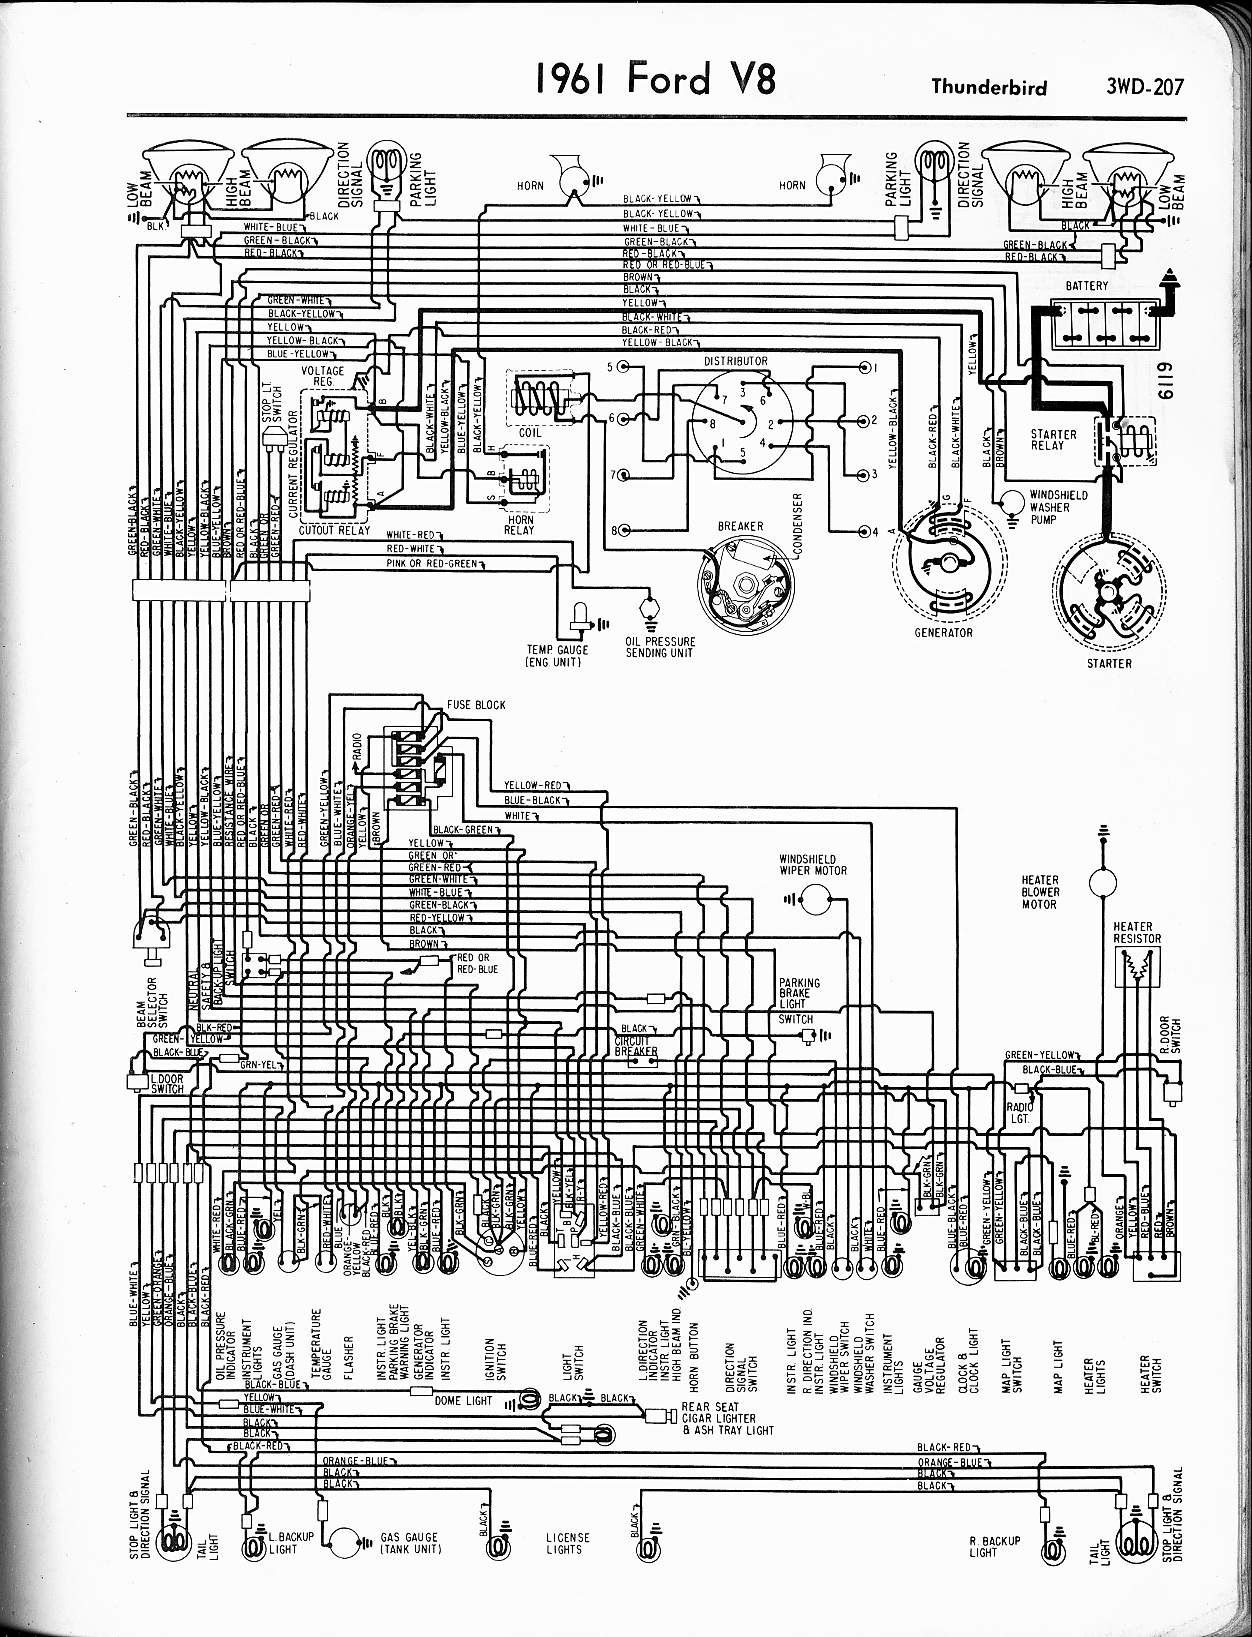 1961 ford generator wiring diagram residential electrical symbols u2022 rh bookmyad co 1957 Ford Fairlane Wiring-Diagram 59 Ford Fairlane Wiring-Diagram